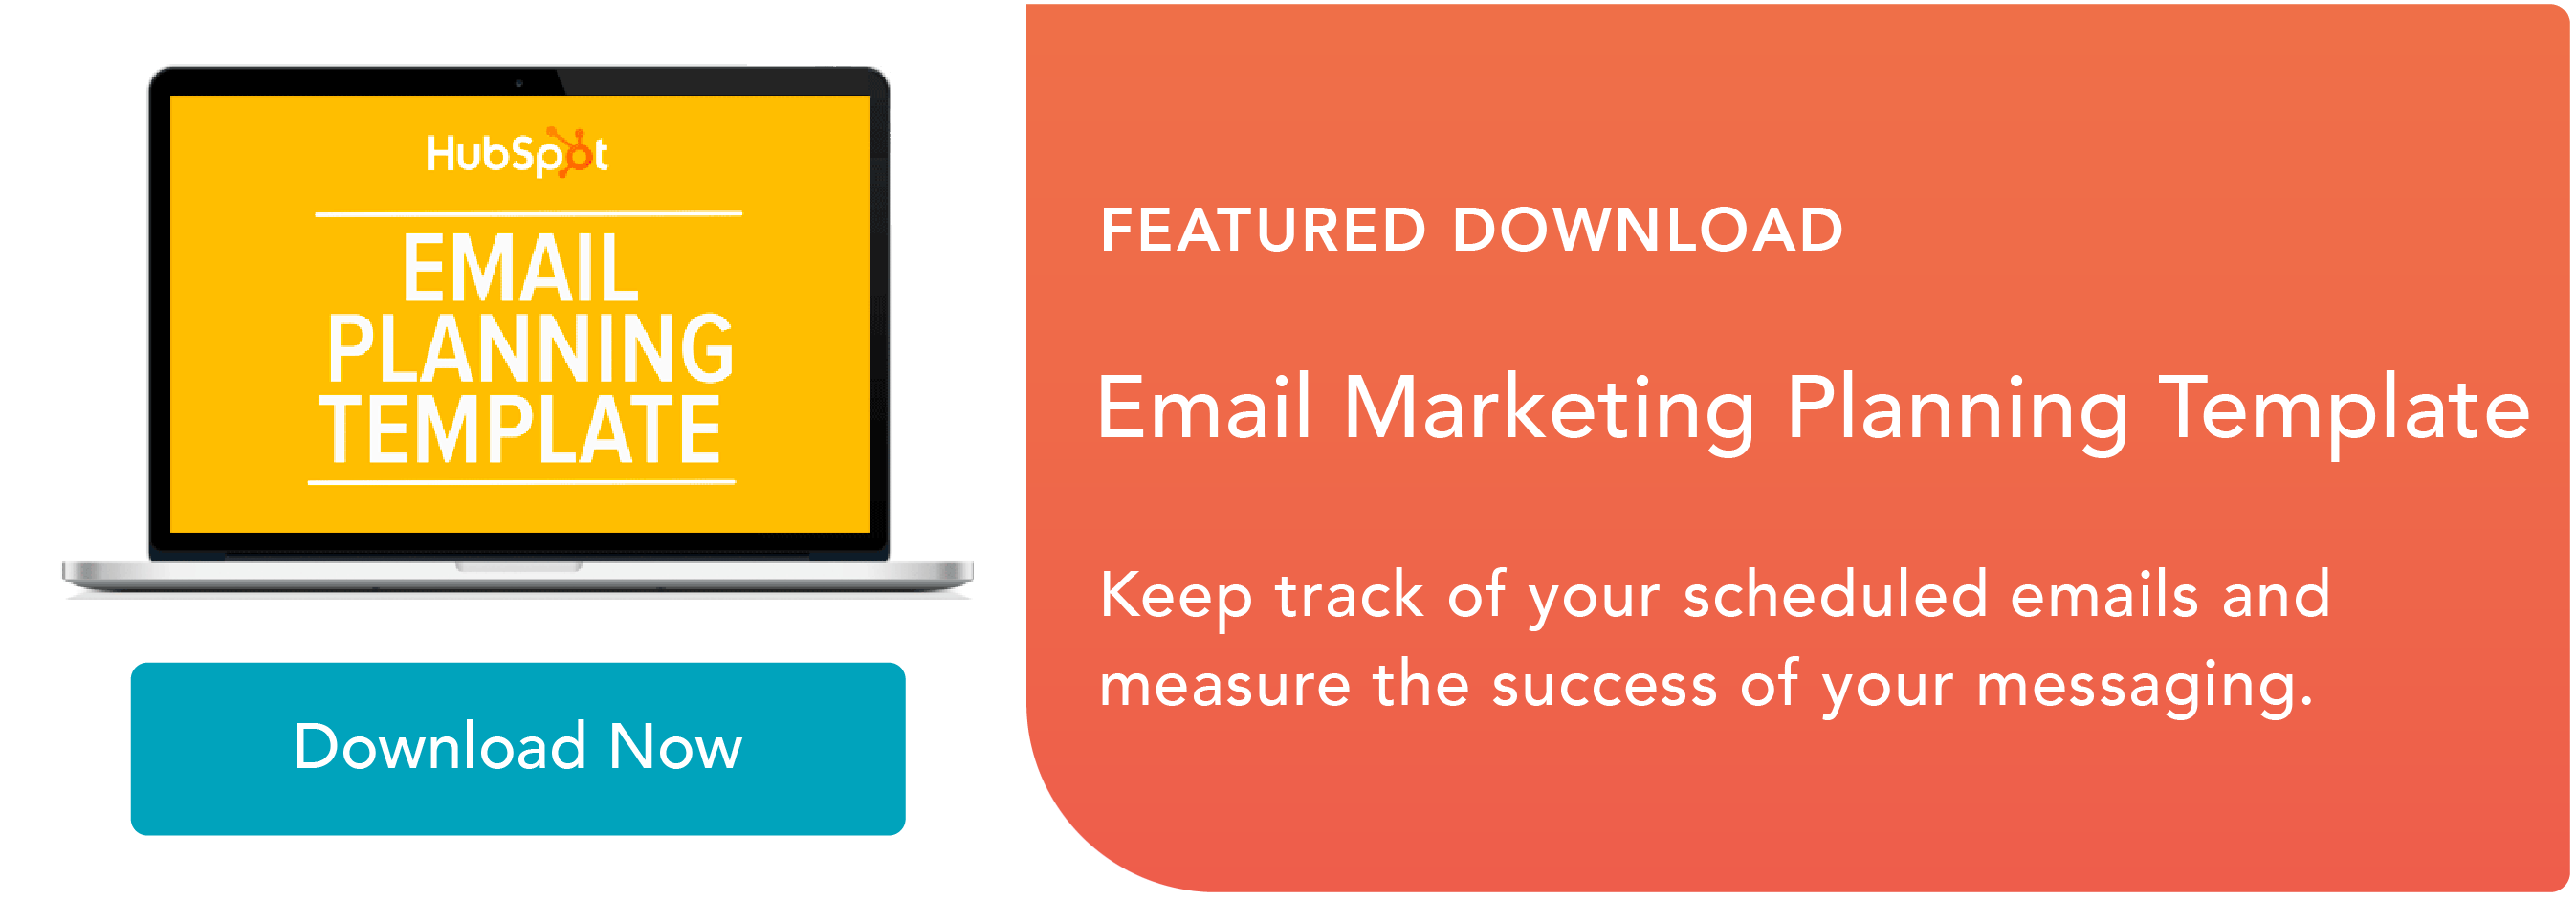 Email Analytics: The 6 Email Marketing Metrics & KPIs You Should Be